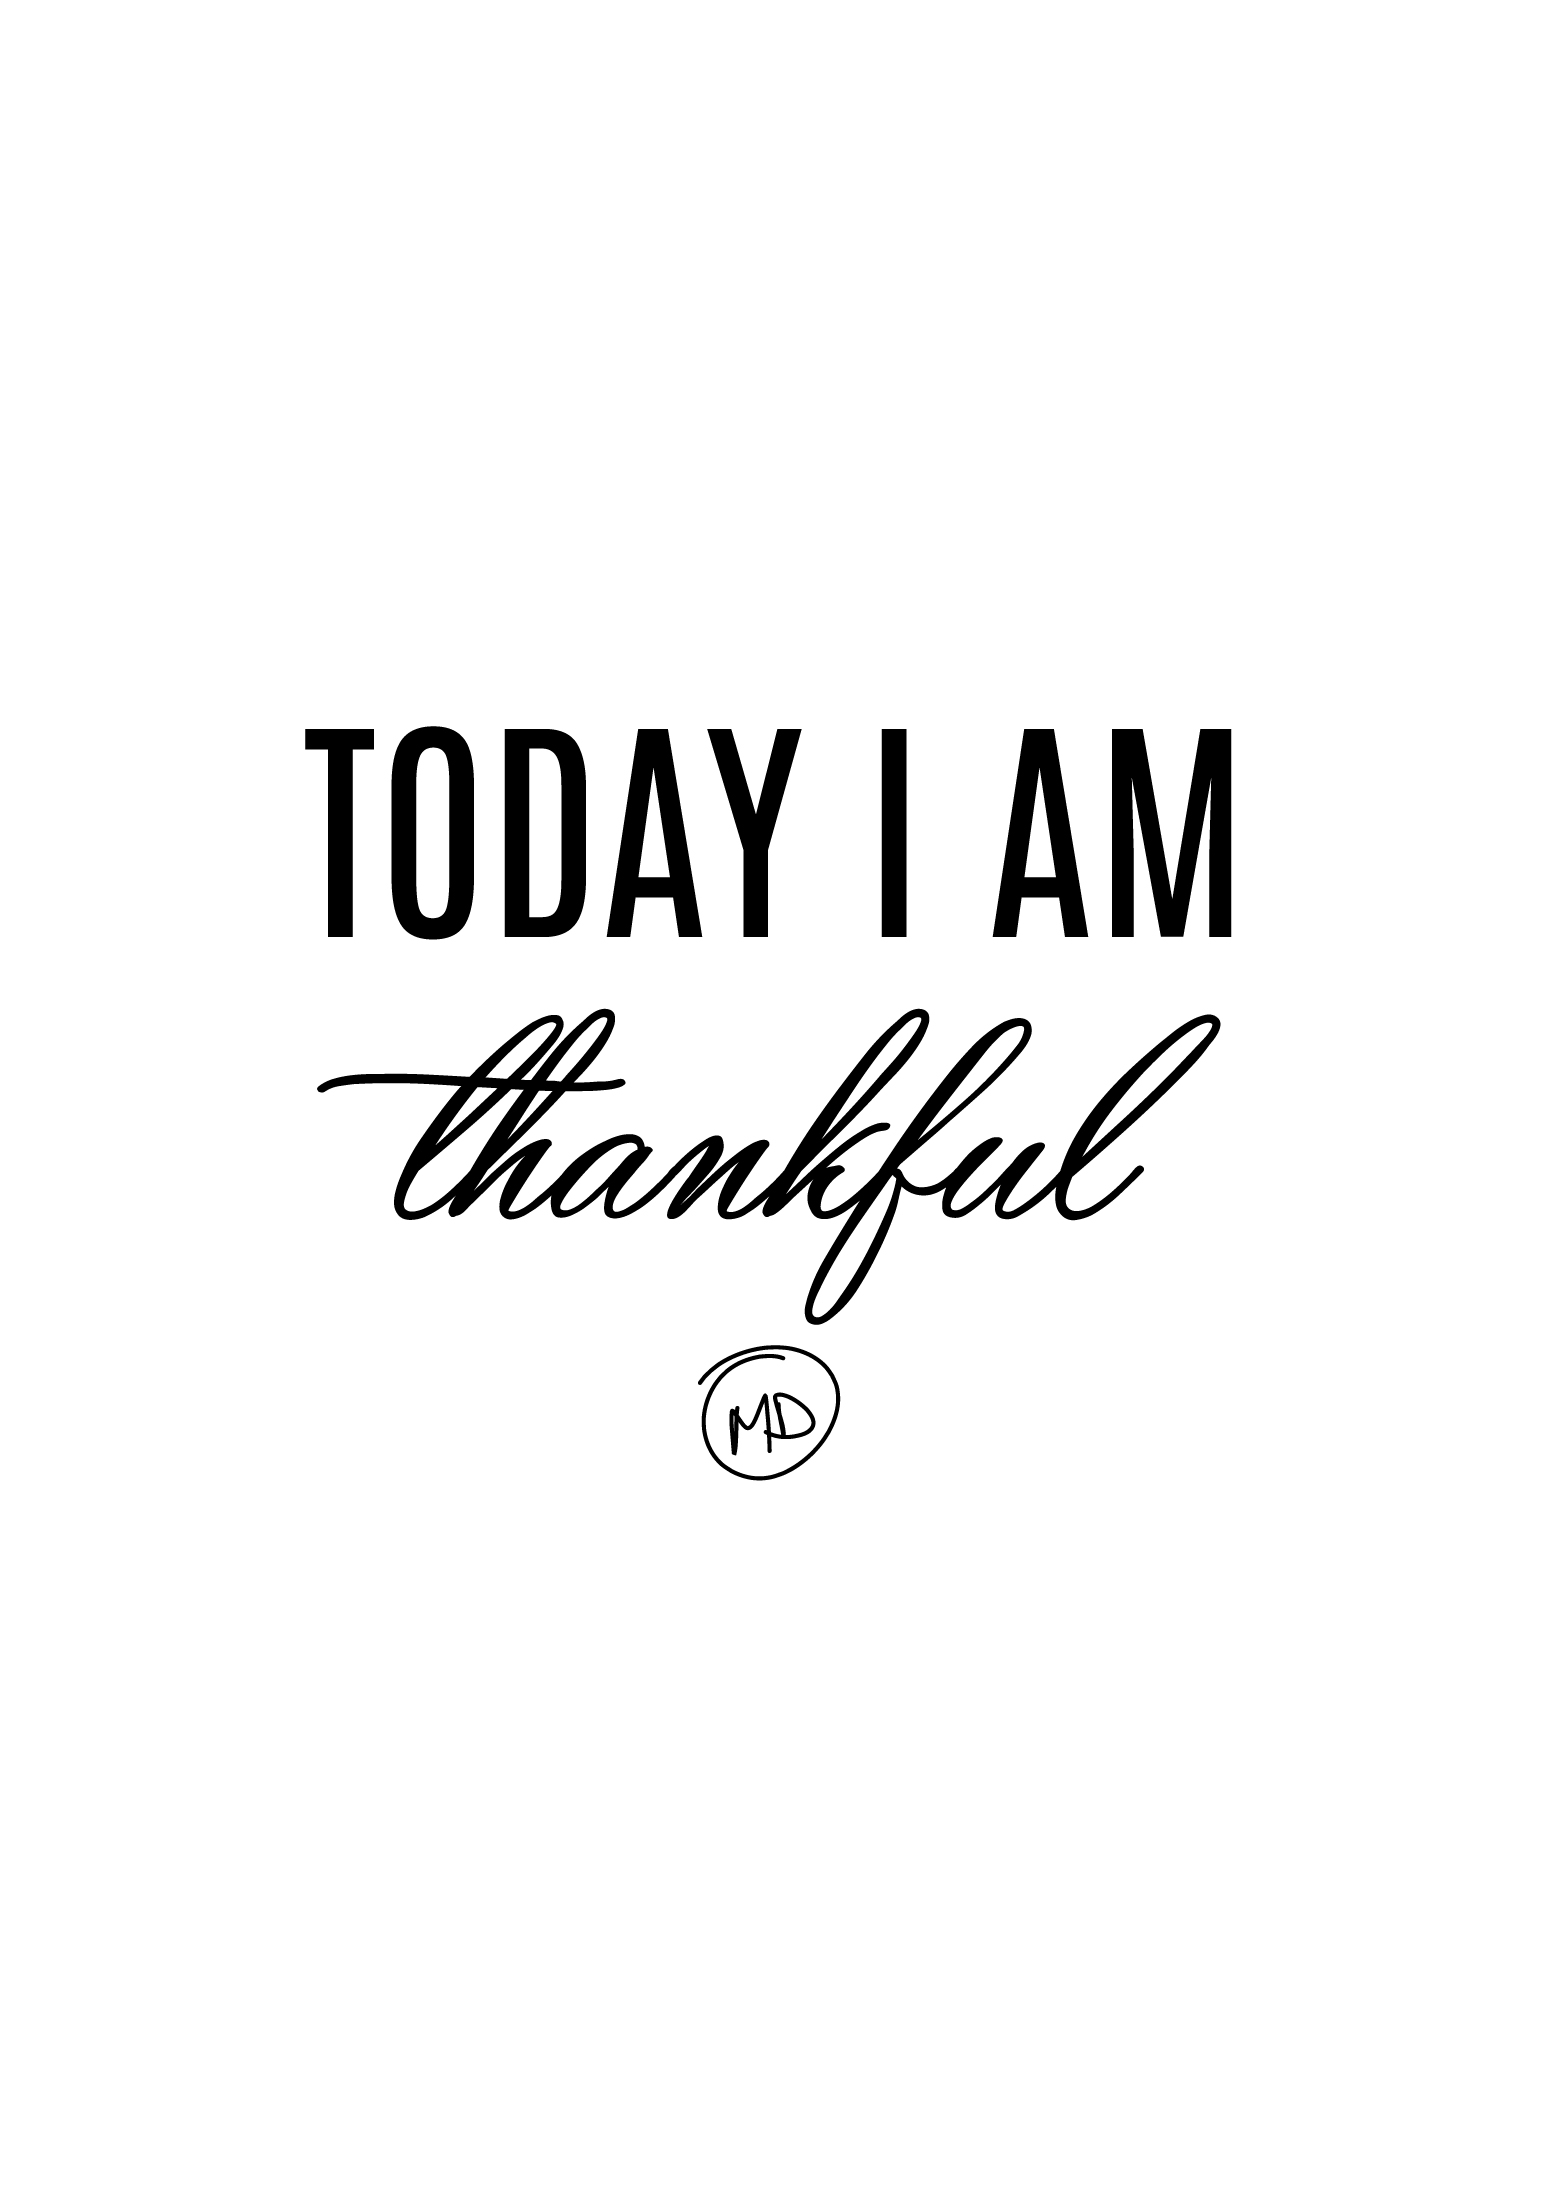 Free Printables: Today I Am Thankful